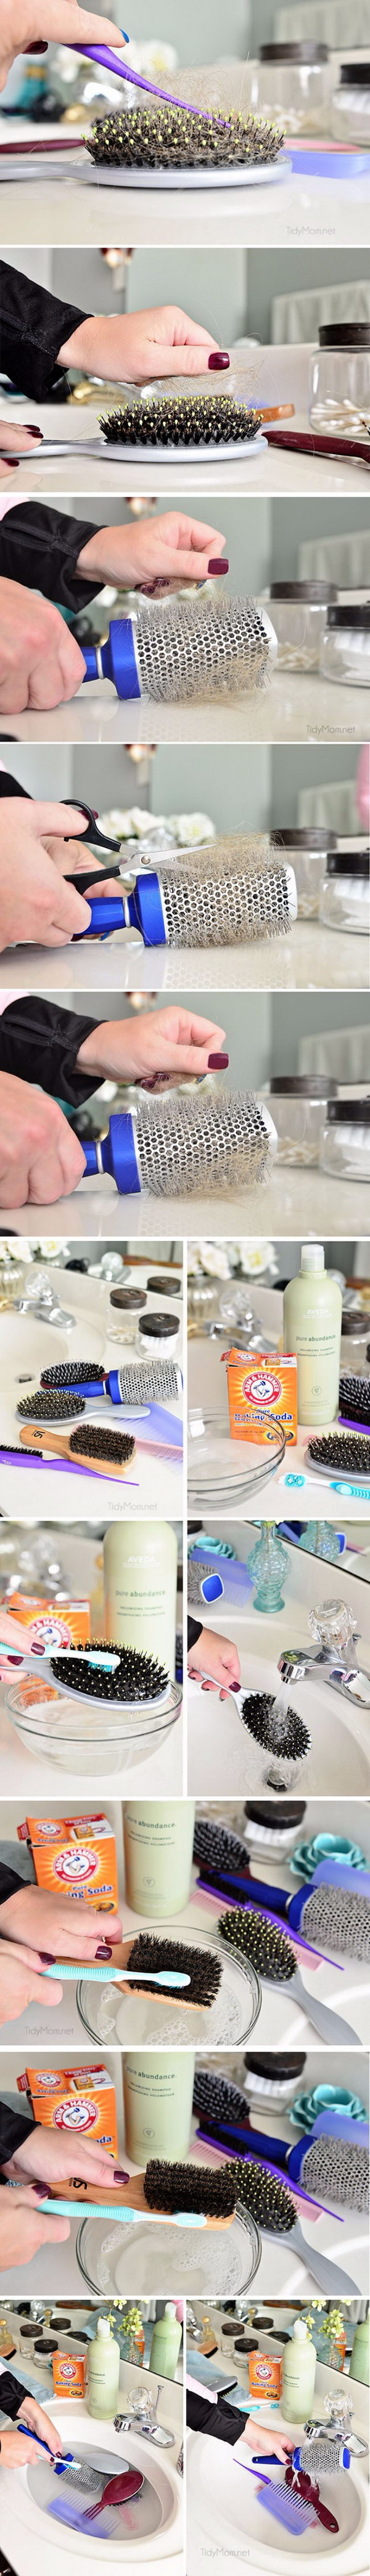 10 Minutes Cleaning Ideas For Your Hairbrushes.